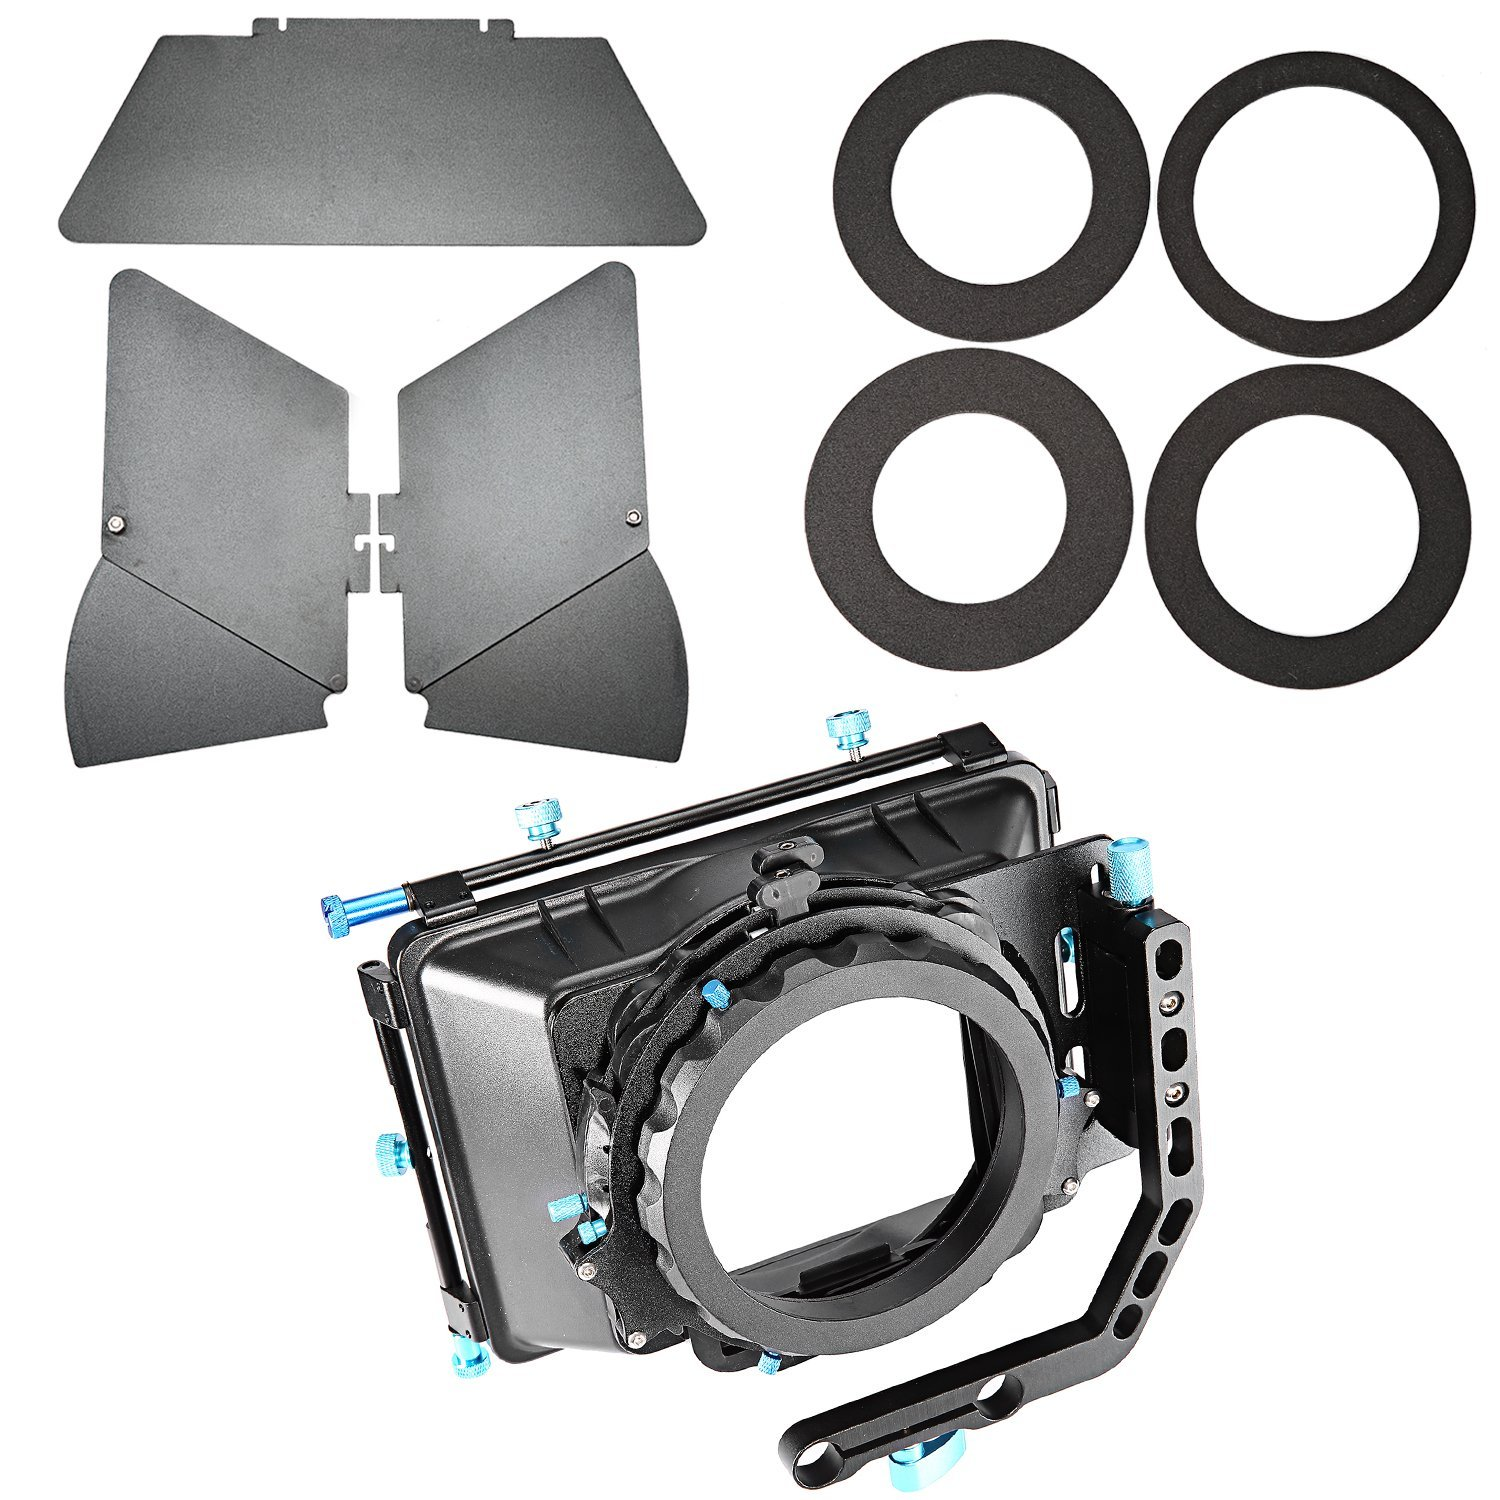 Neewer Aluminum Alloy Swing-away Design Matte Box with Filter Tray,Fit 15mm Rail Rod Rig,for Nikon Canon Sony Fujifilm Olympus DSLR Camera,Camcorder Video Movie Film Making System by Neewer